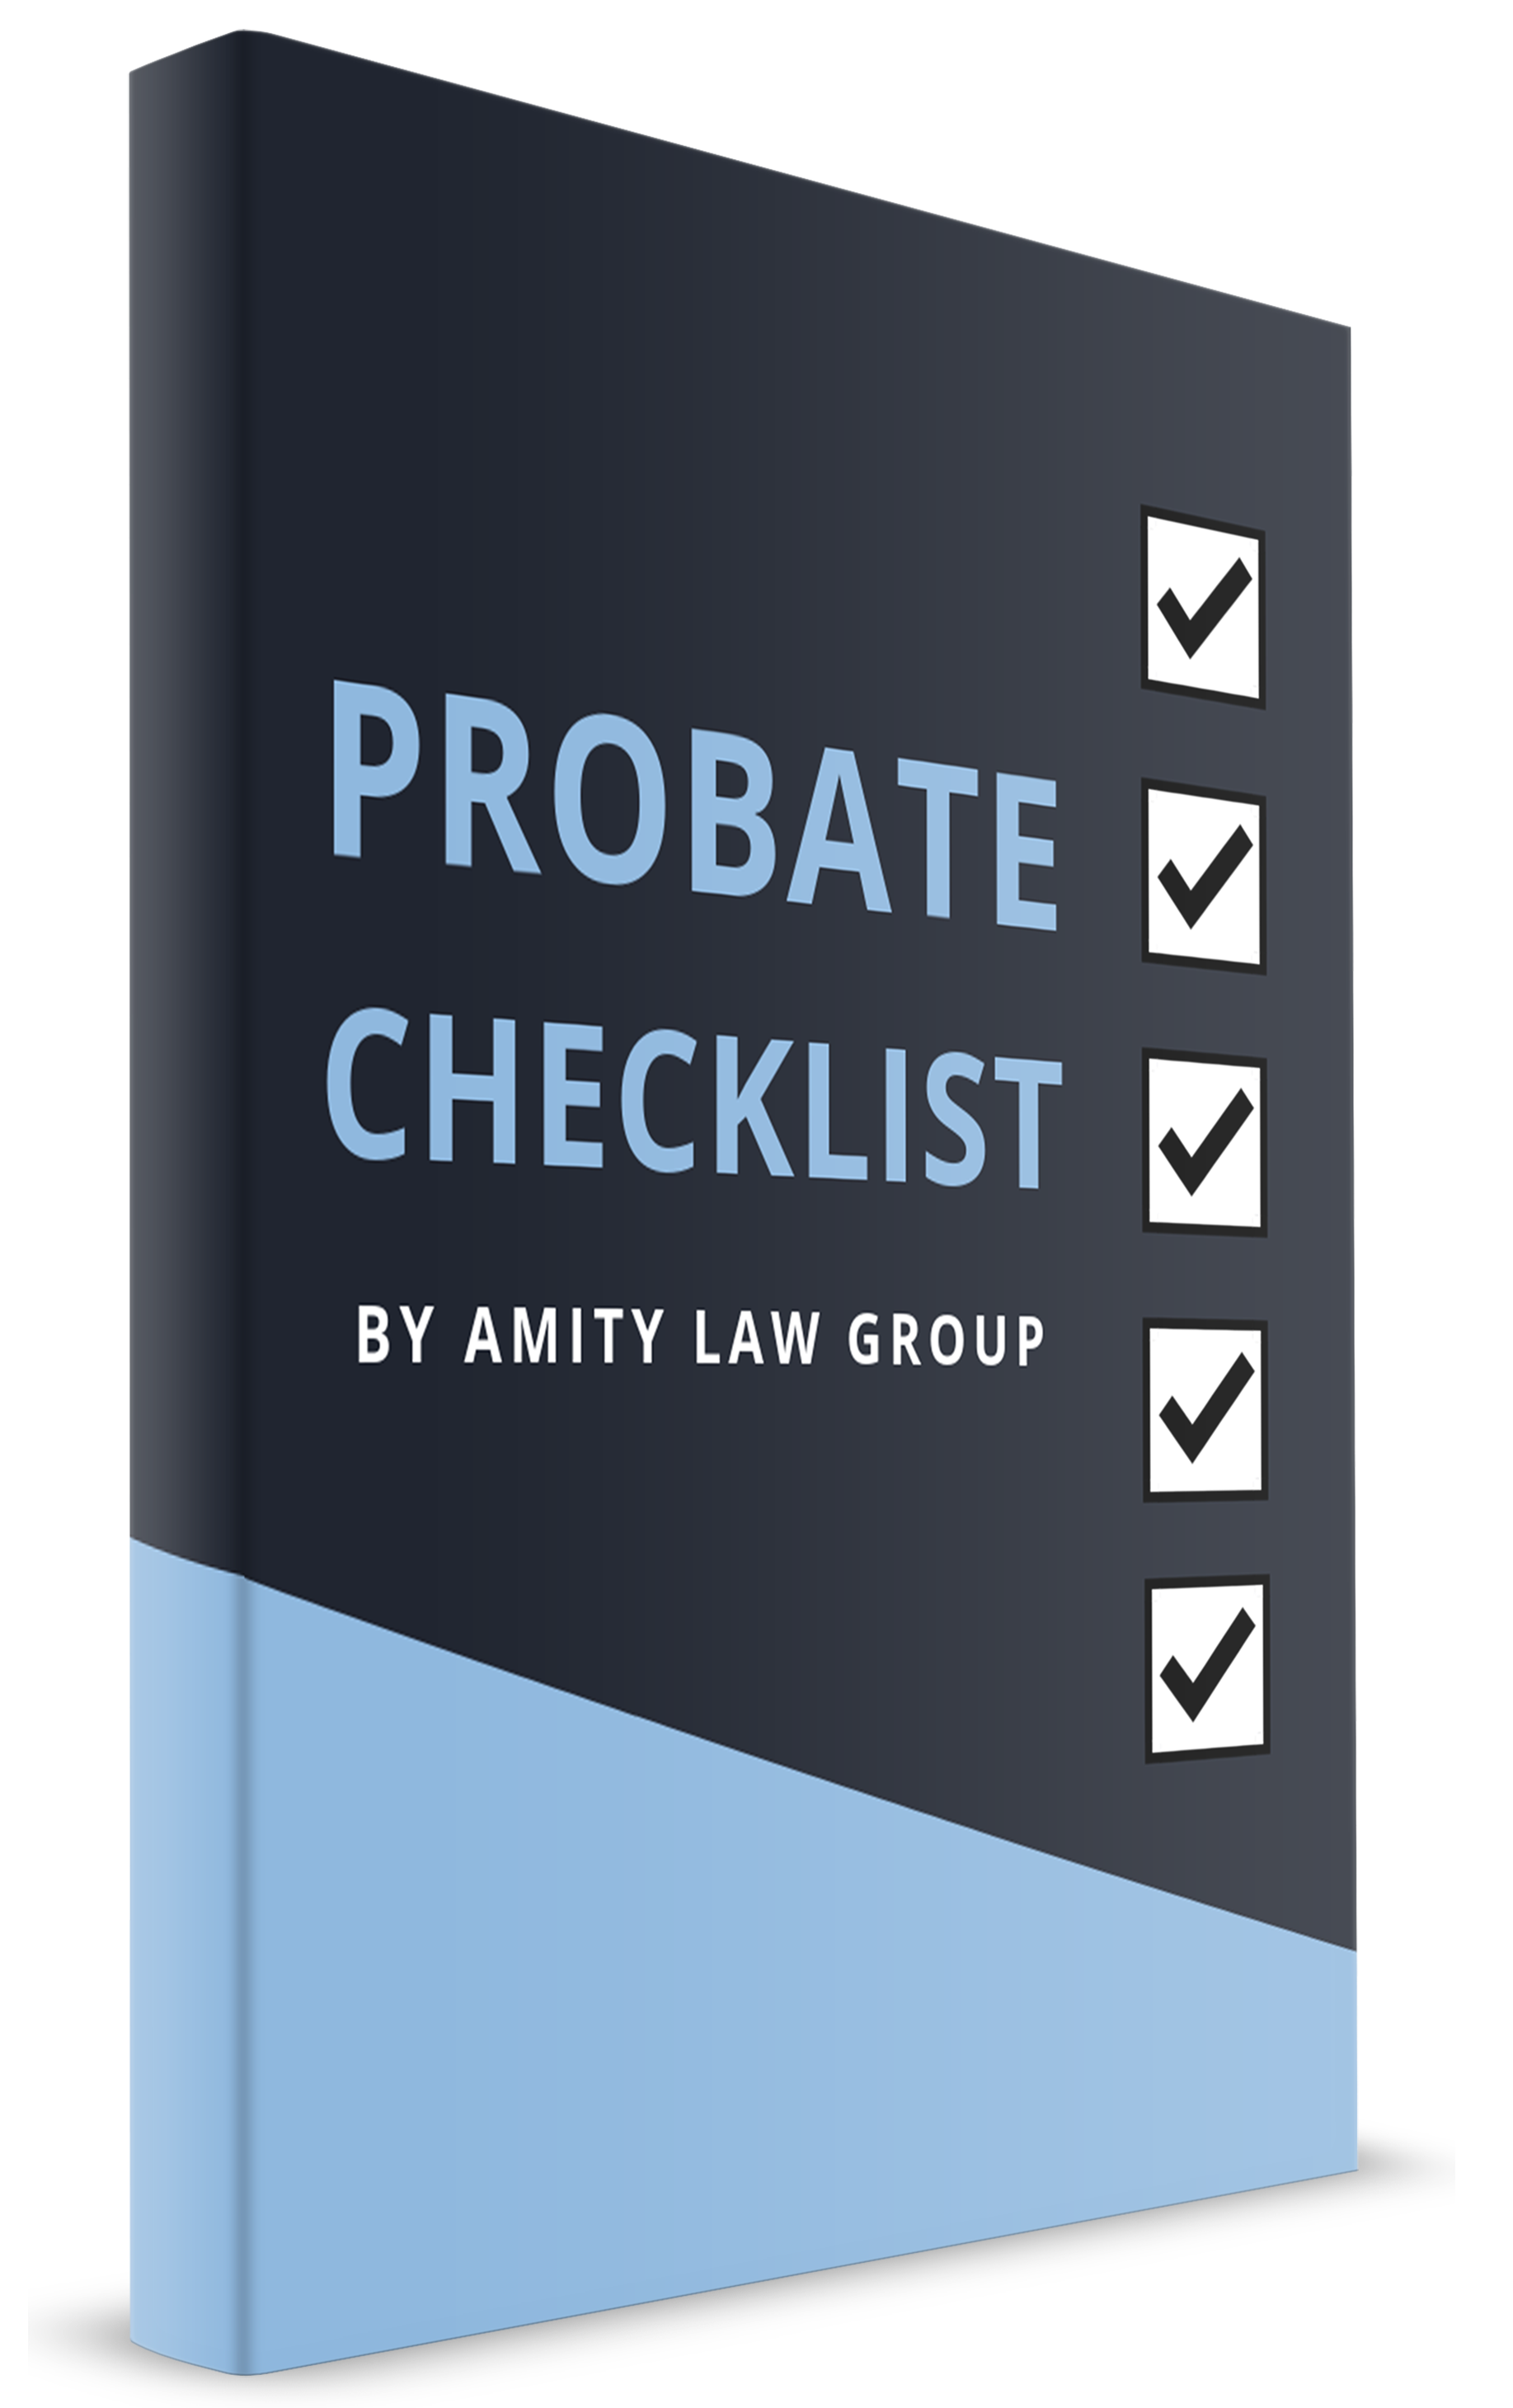 Probate Checklist Bookcover (cropped).png